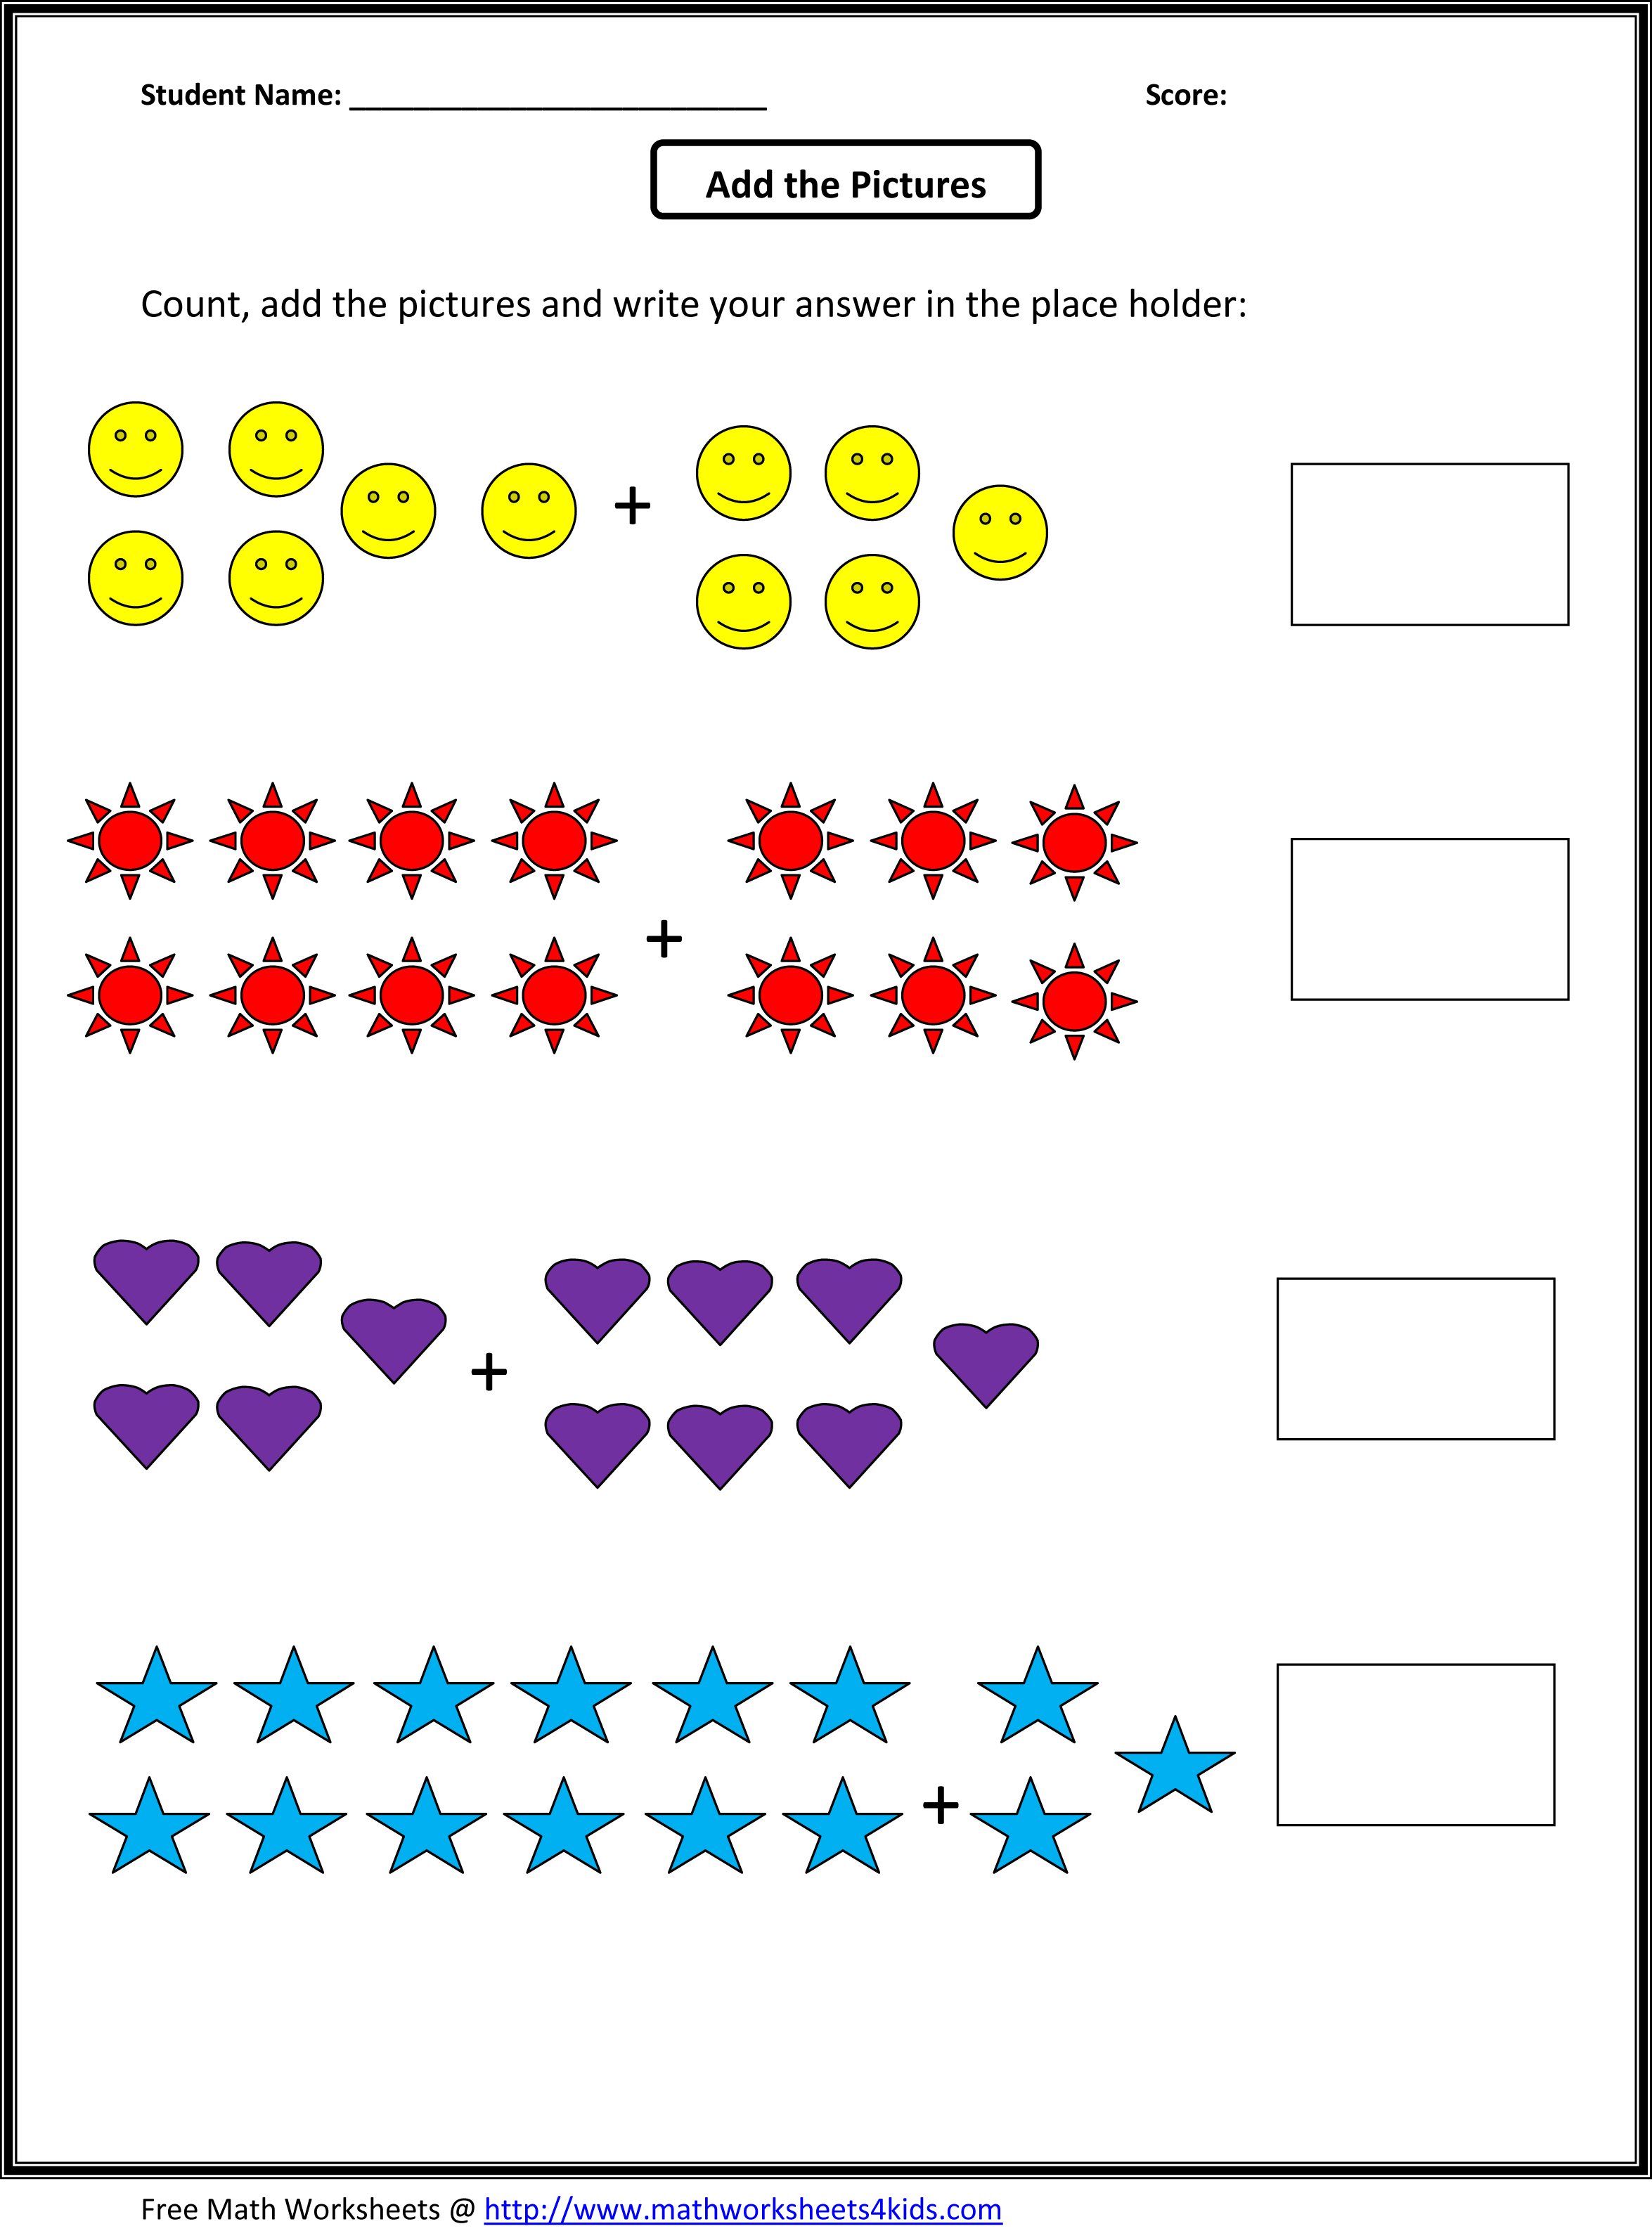 Aldiablosus  Sweet Grade  Maths Worksheet  Reocurent With Lovely Math Worksheets For St Grade Free  Reocurent With Charming Writing Net Ionic Equations Worksheet Also Similes Worksheet In Addition Probability Worksheet  And Addition To  Worksheets As Well As Adding And Subtracting Worksheet Additionally Th Grade Math Worksheets From Reocurentcom With Aldiablosus  Lovely Grade  Maths Worksheet  Reocurent With Charming Math Worksheets For St Grade Free  Reocurent And Sweet Writing Net Ionic Equations Worksheet Also Similes Worksheet In Addition Probability Worksheet  From Reocurentcom